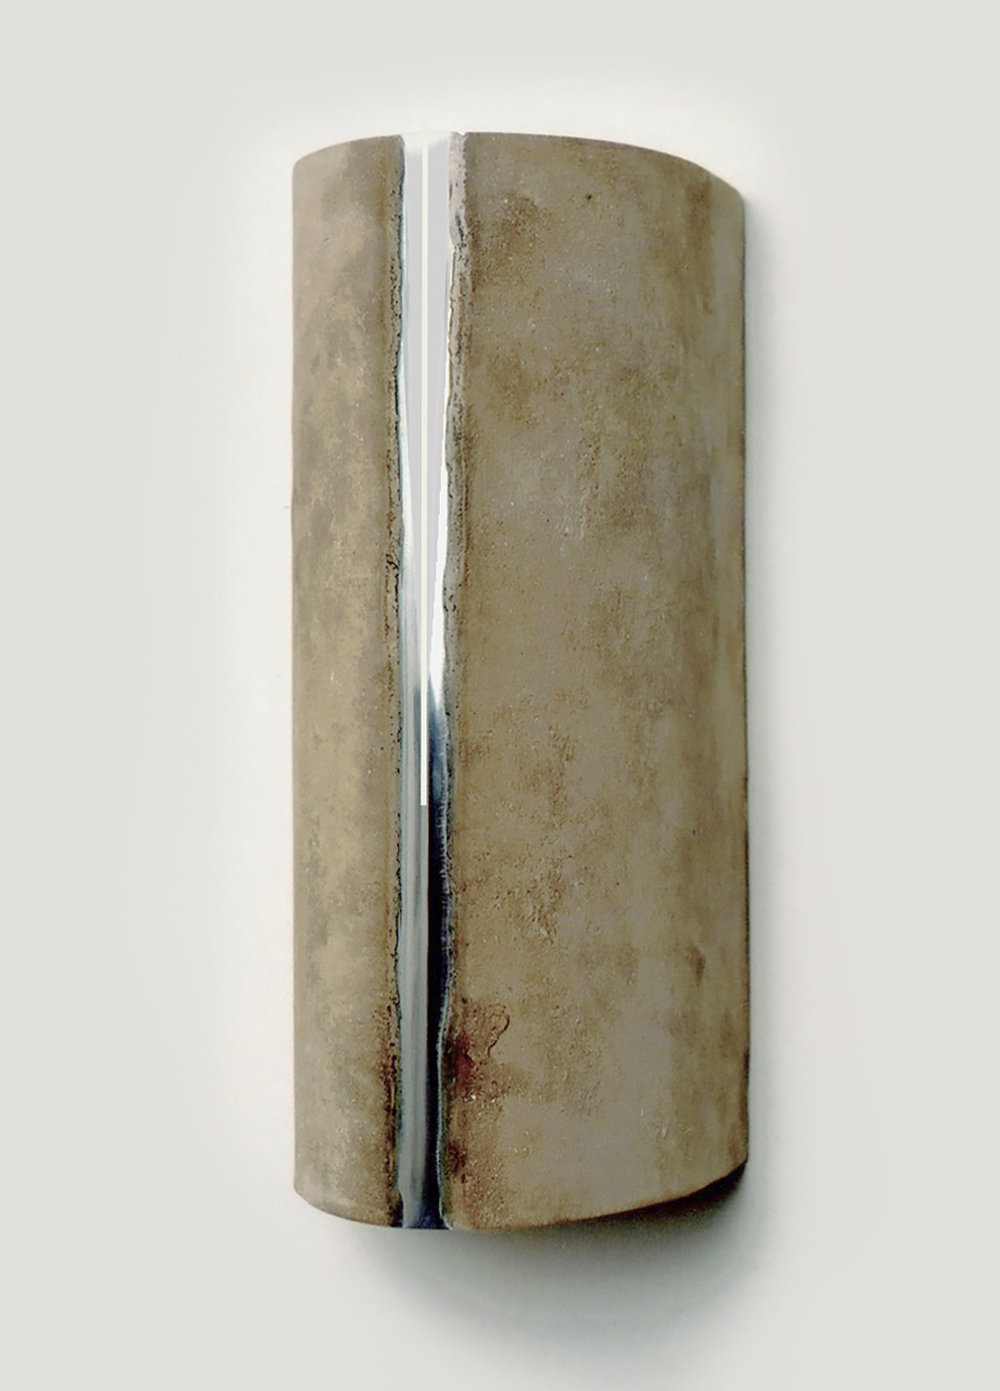 PROJECTING PORTAL (I) 2001  limestone powder on zinc  21.6 x 9.4 x 10.3   (private collection)